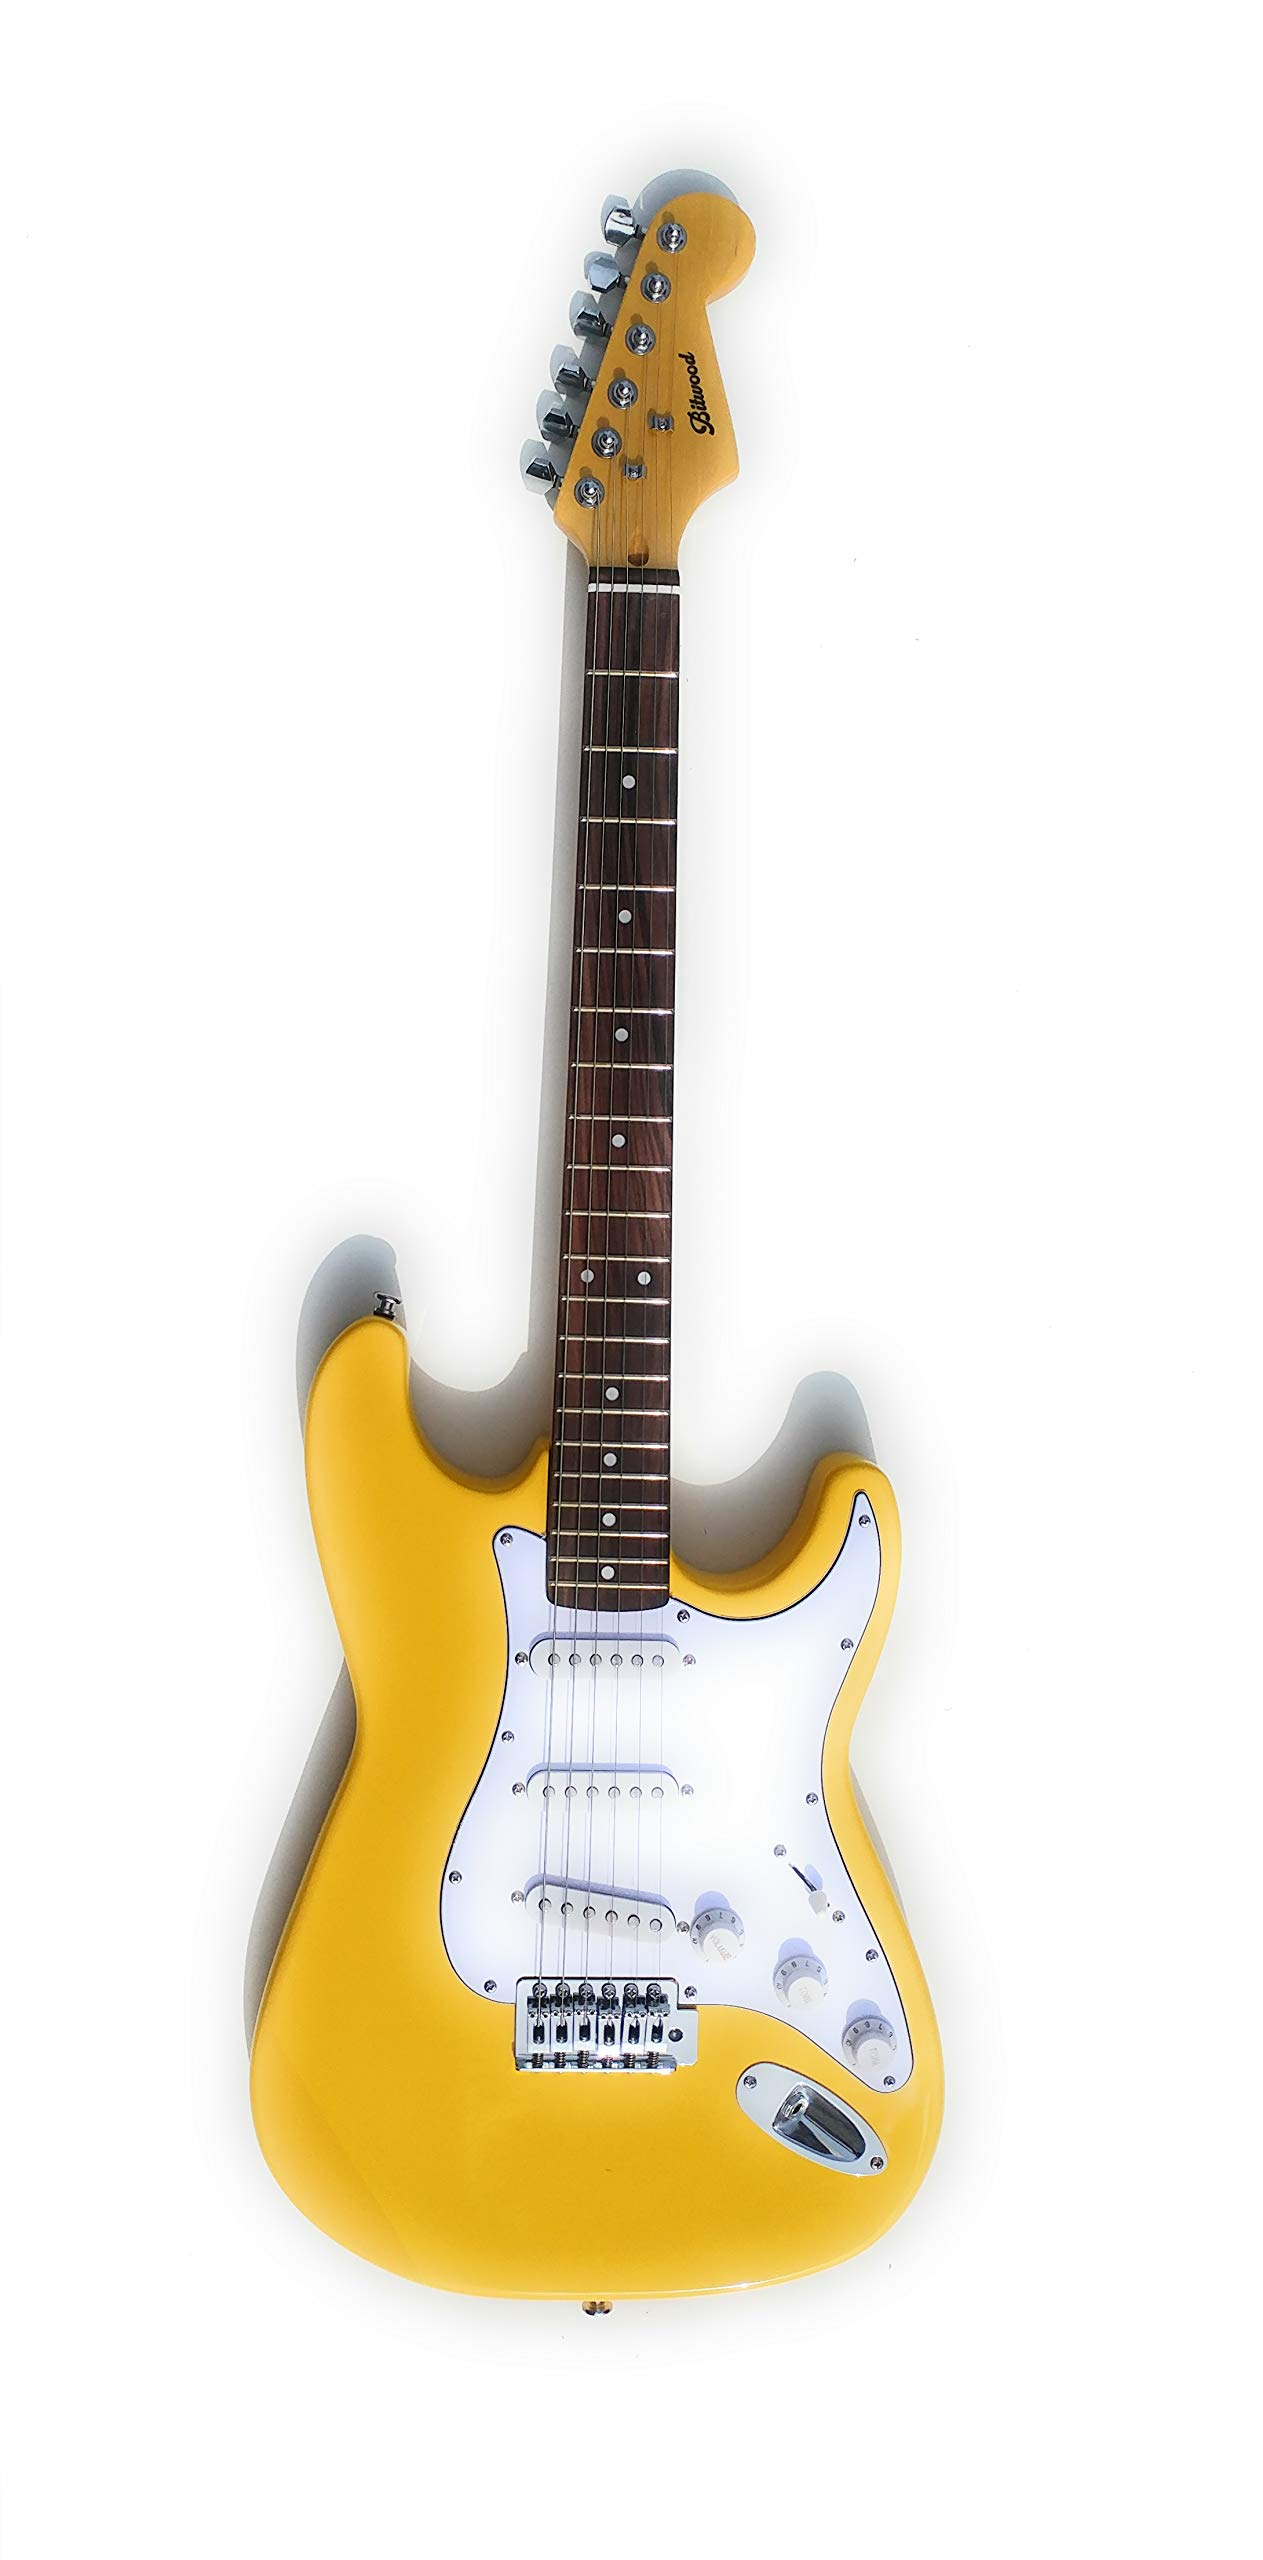 Cheap Bitwood Guitars Basic ST Electric Guitar 3 Pickups Rosewood Fingerboard Yellow Black Friday & Cyber Monday 2019